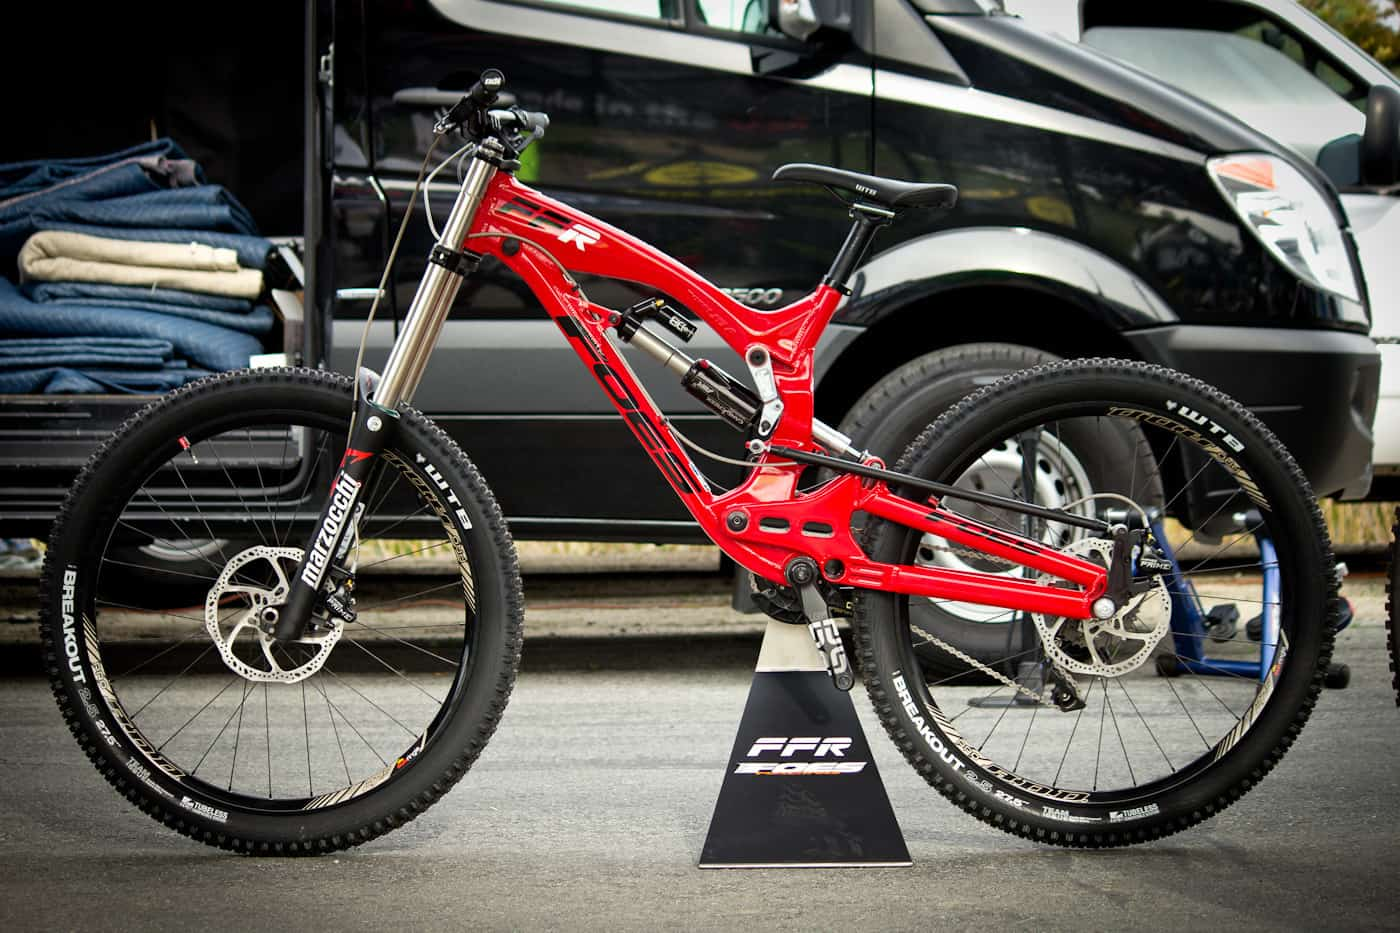 Bikes Made In The Usa FFR downhill mountain bike